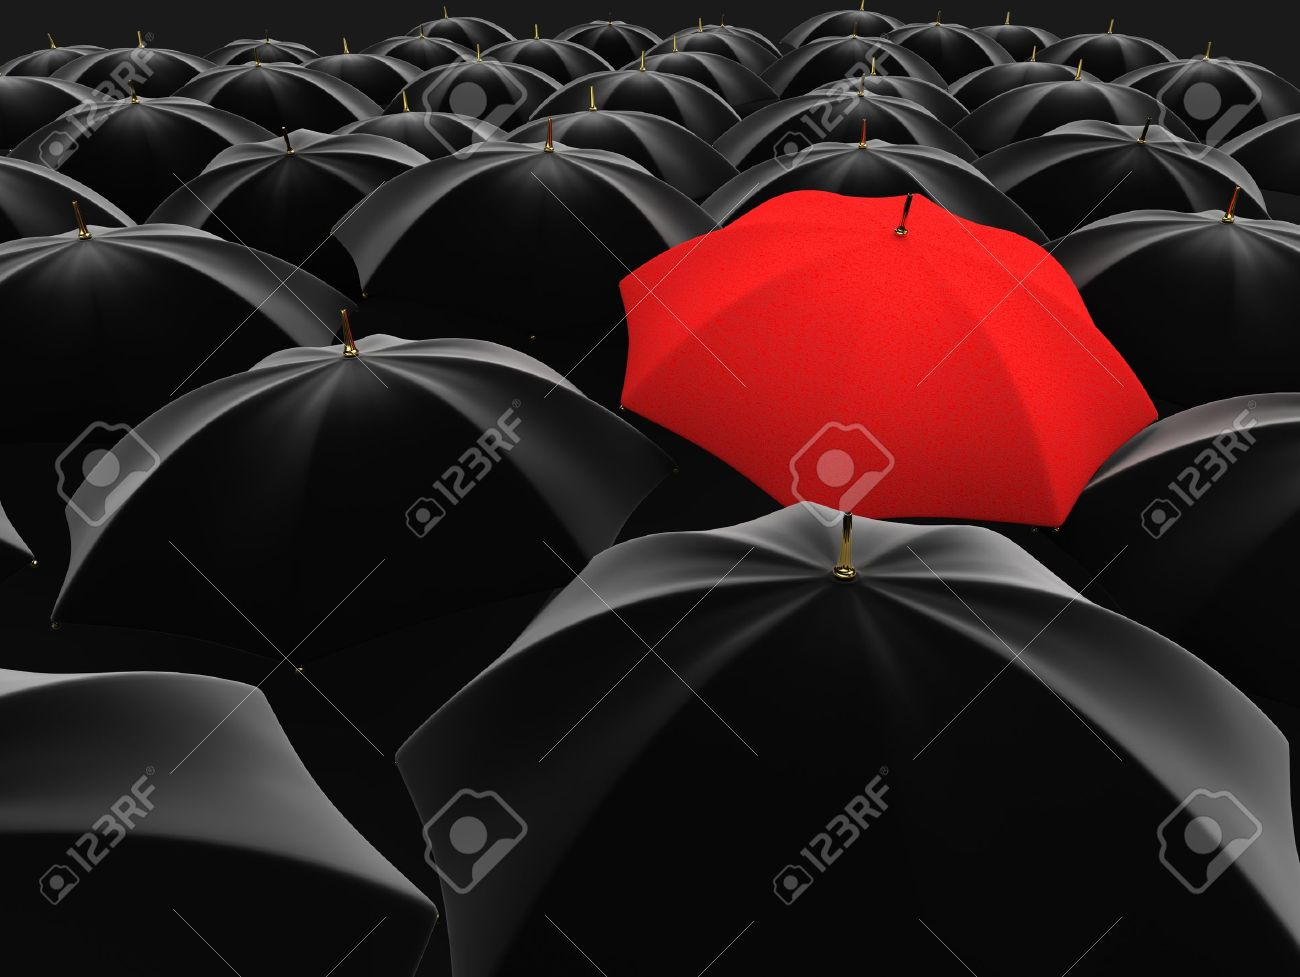 3d illustration of a red umbrella in the middle of several black umbrellas - 13251390